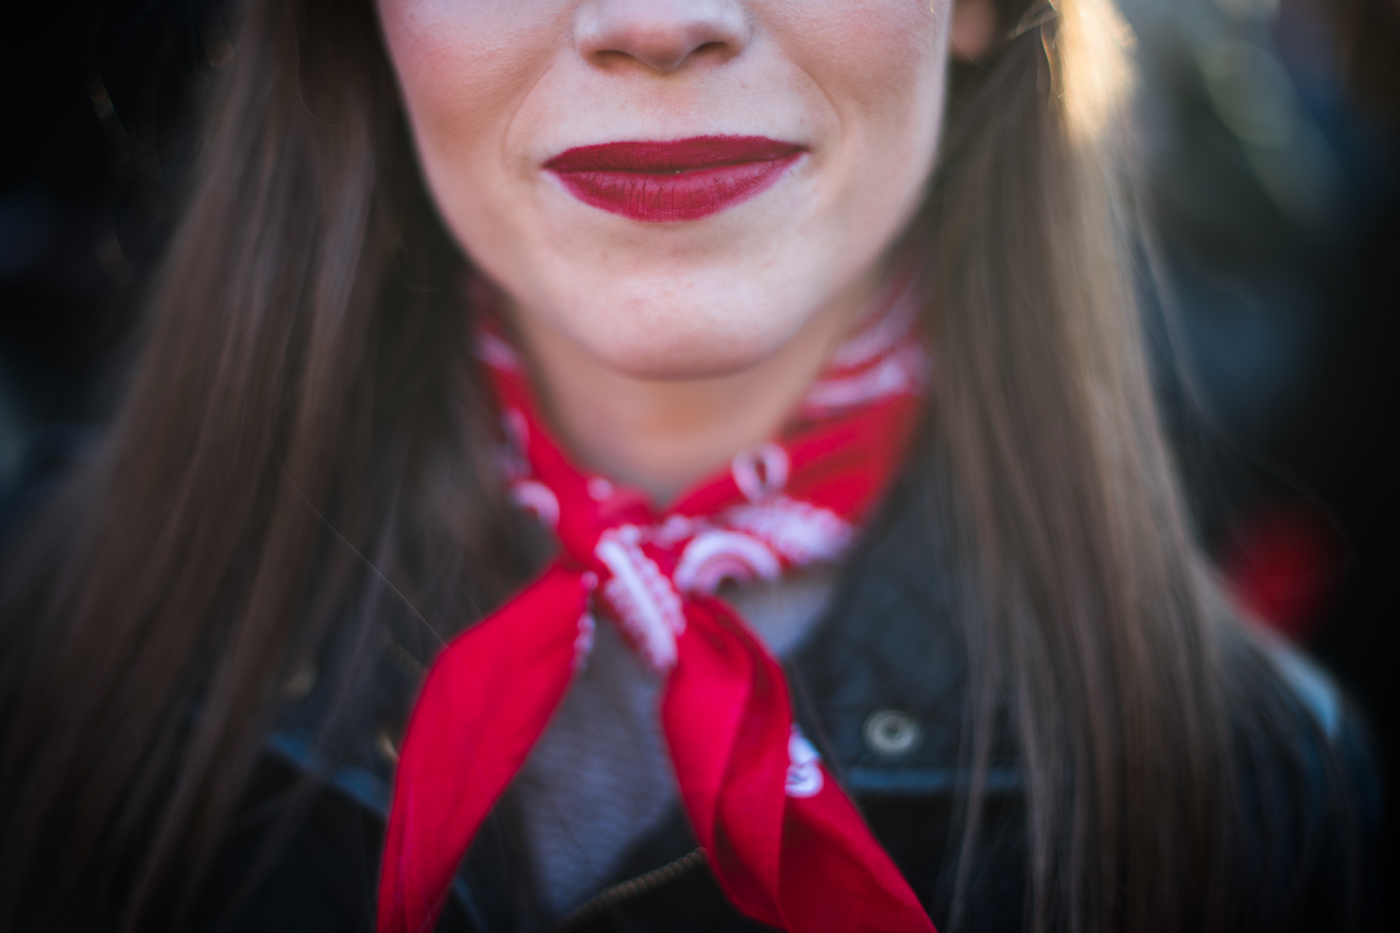 Mary Koerner wears red lipstick and a bandana in solidarity with women around the world during an International Women's Day rally and march at Washington Square Park in New York, NY on March 8, 2017. CREDIT: Mark Kauzlarich for CNN